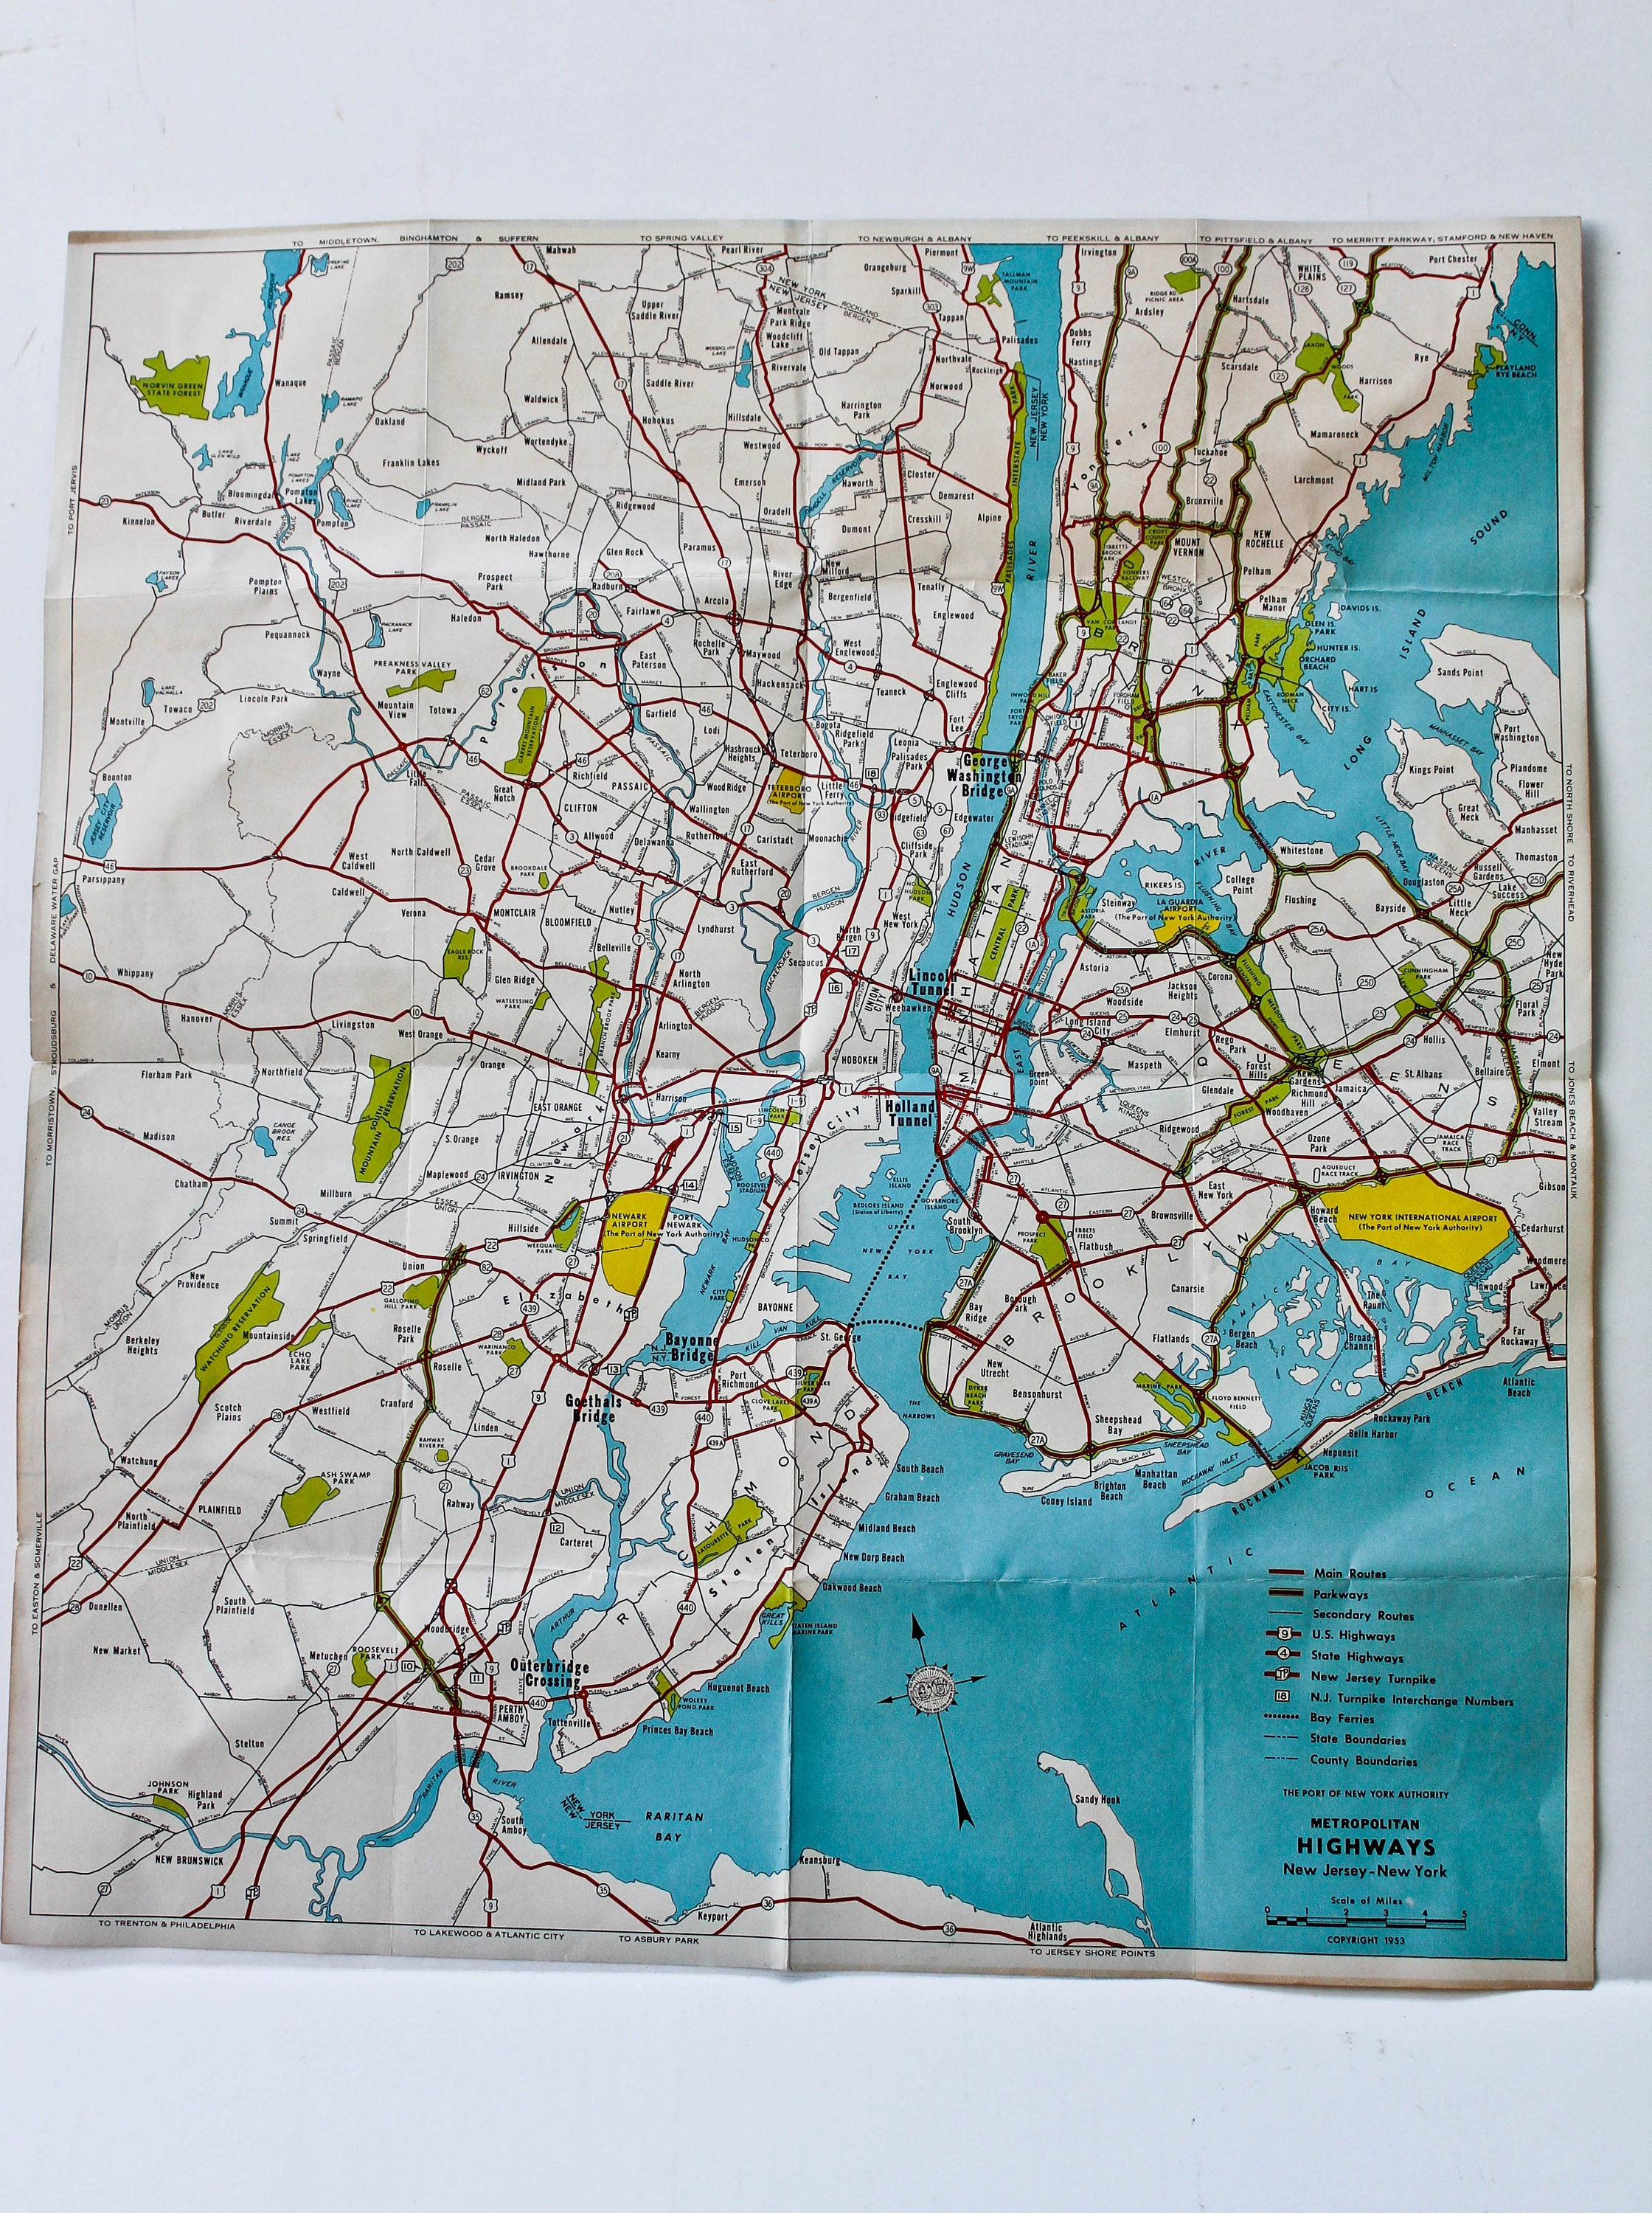 1953 Metropolitan New Jersey New York Highways Map Brochure